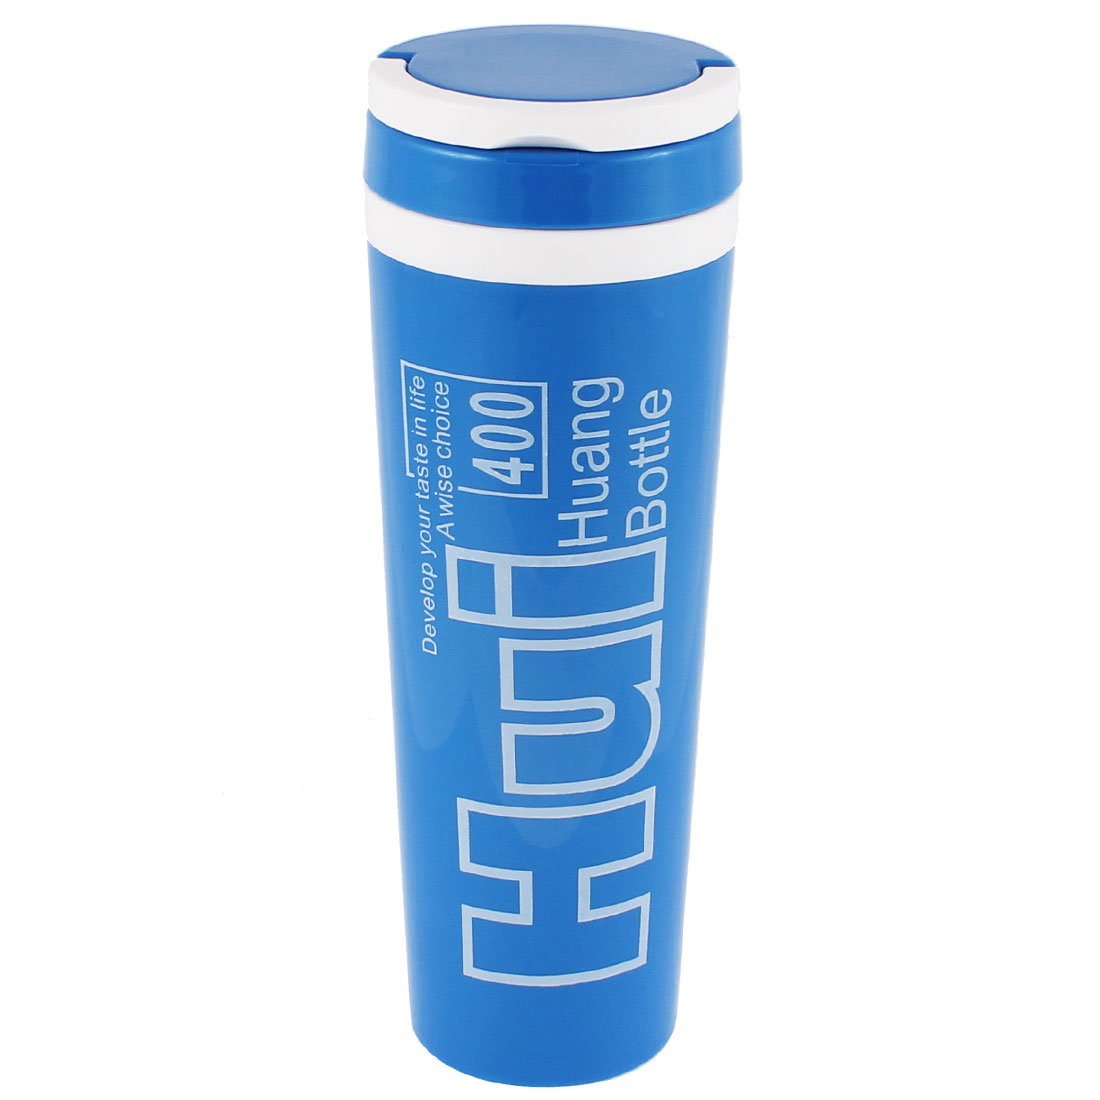 Water Letter Pattern Insulated Heat Retaining Bottle Cup Mug Vacuum Flask 400ml Blue